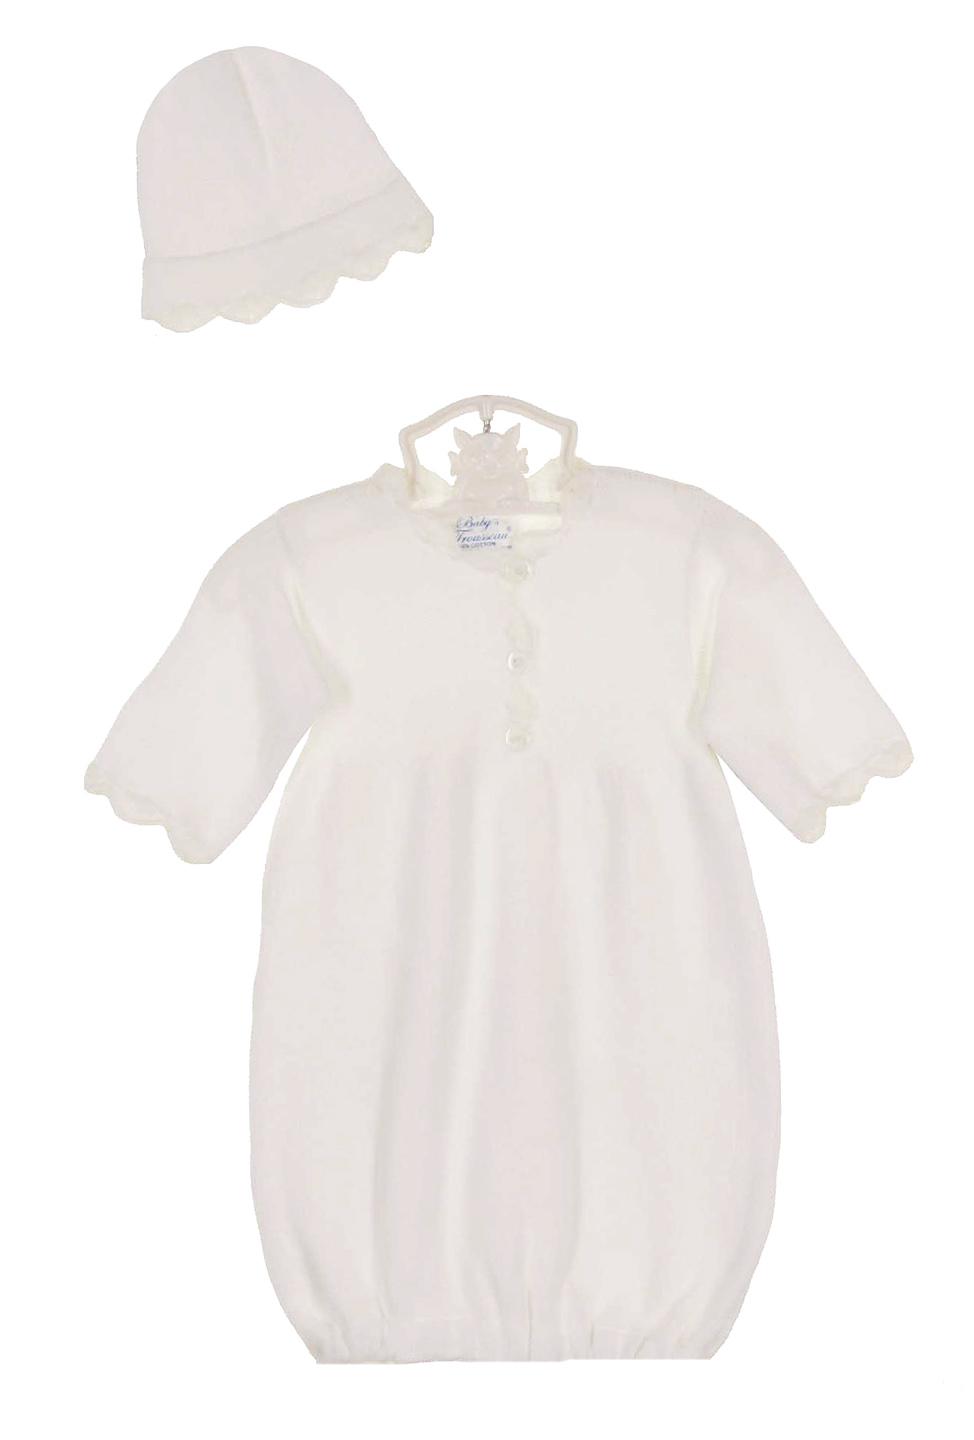 Baby s Trousseau white cotton knit gown with matching hat e9dcac13ae9